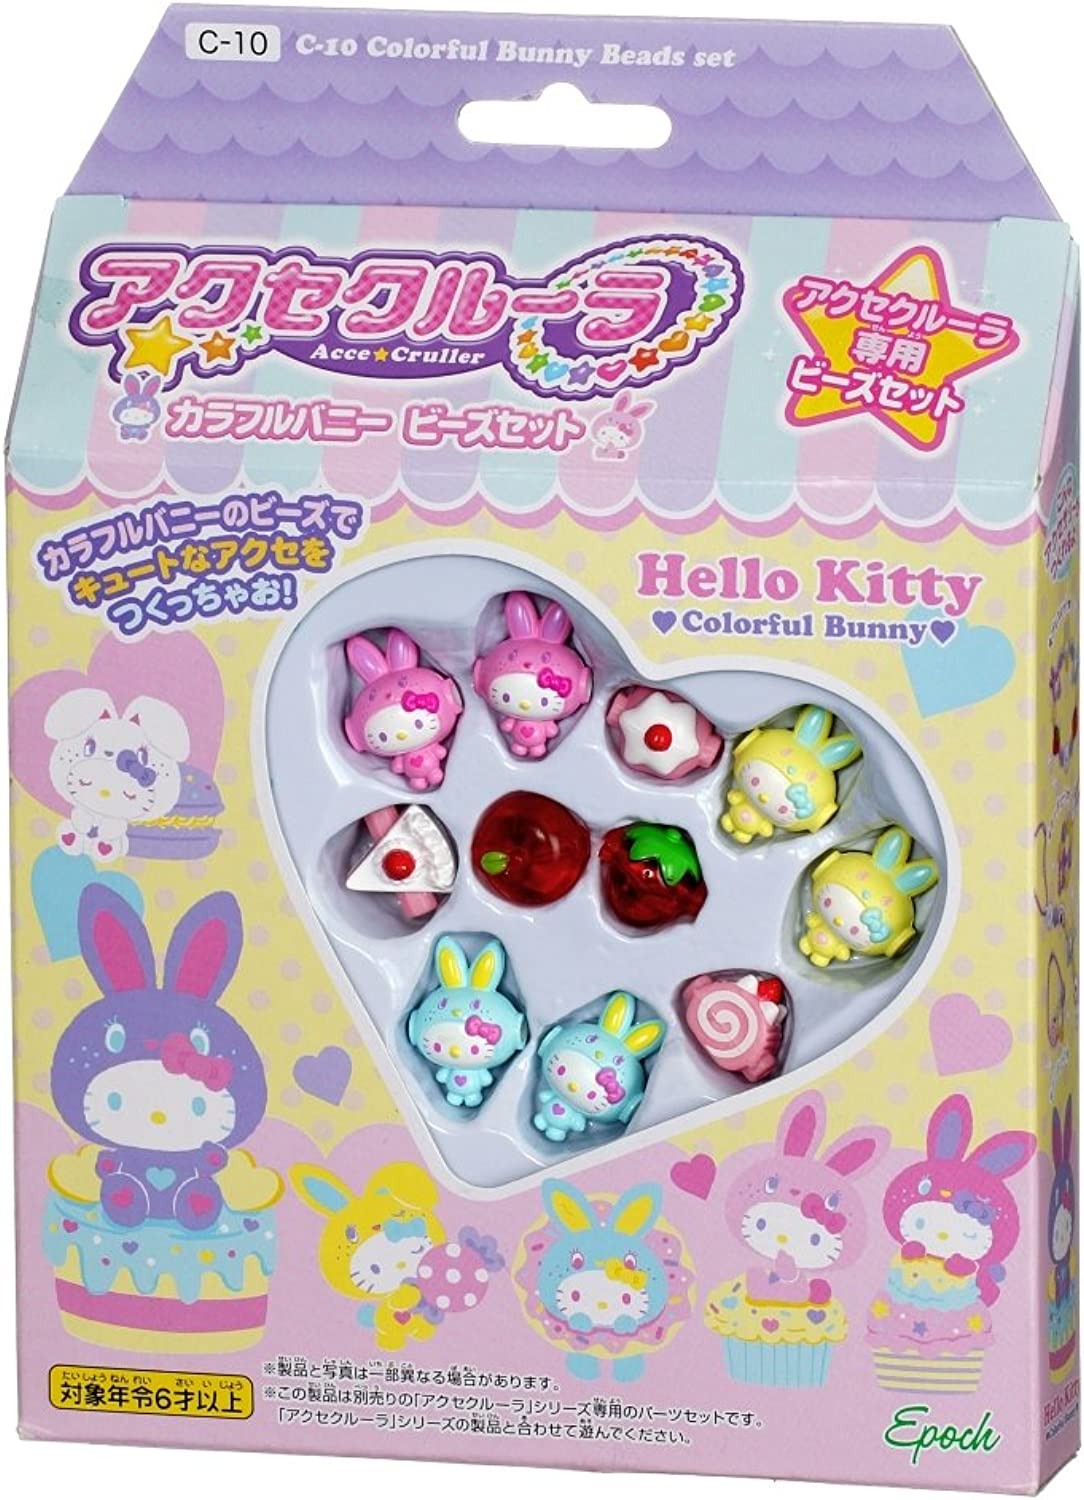 Crew access la hello kitty Coloreeeful bunny bead set C-10 (japan import)